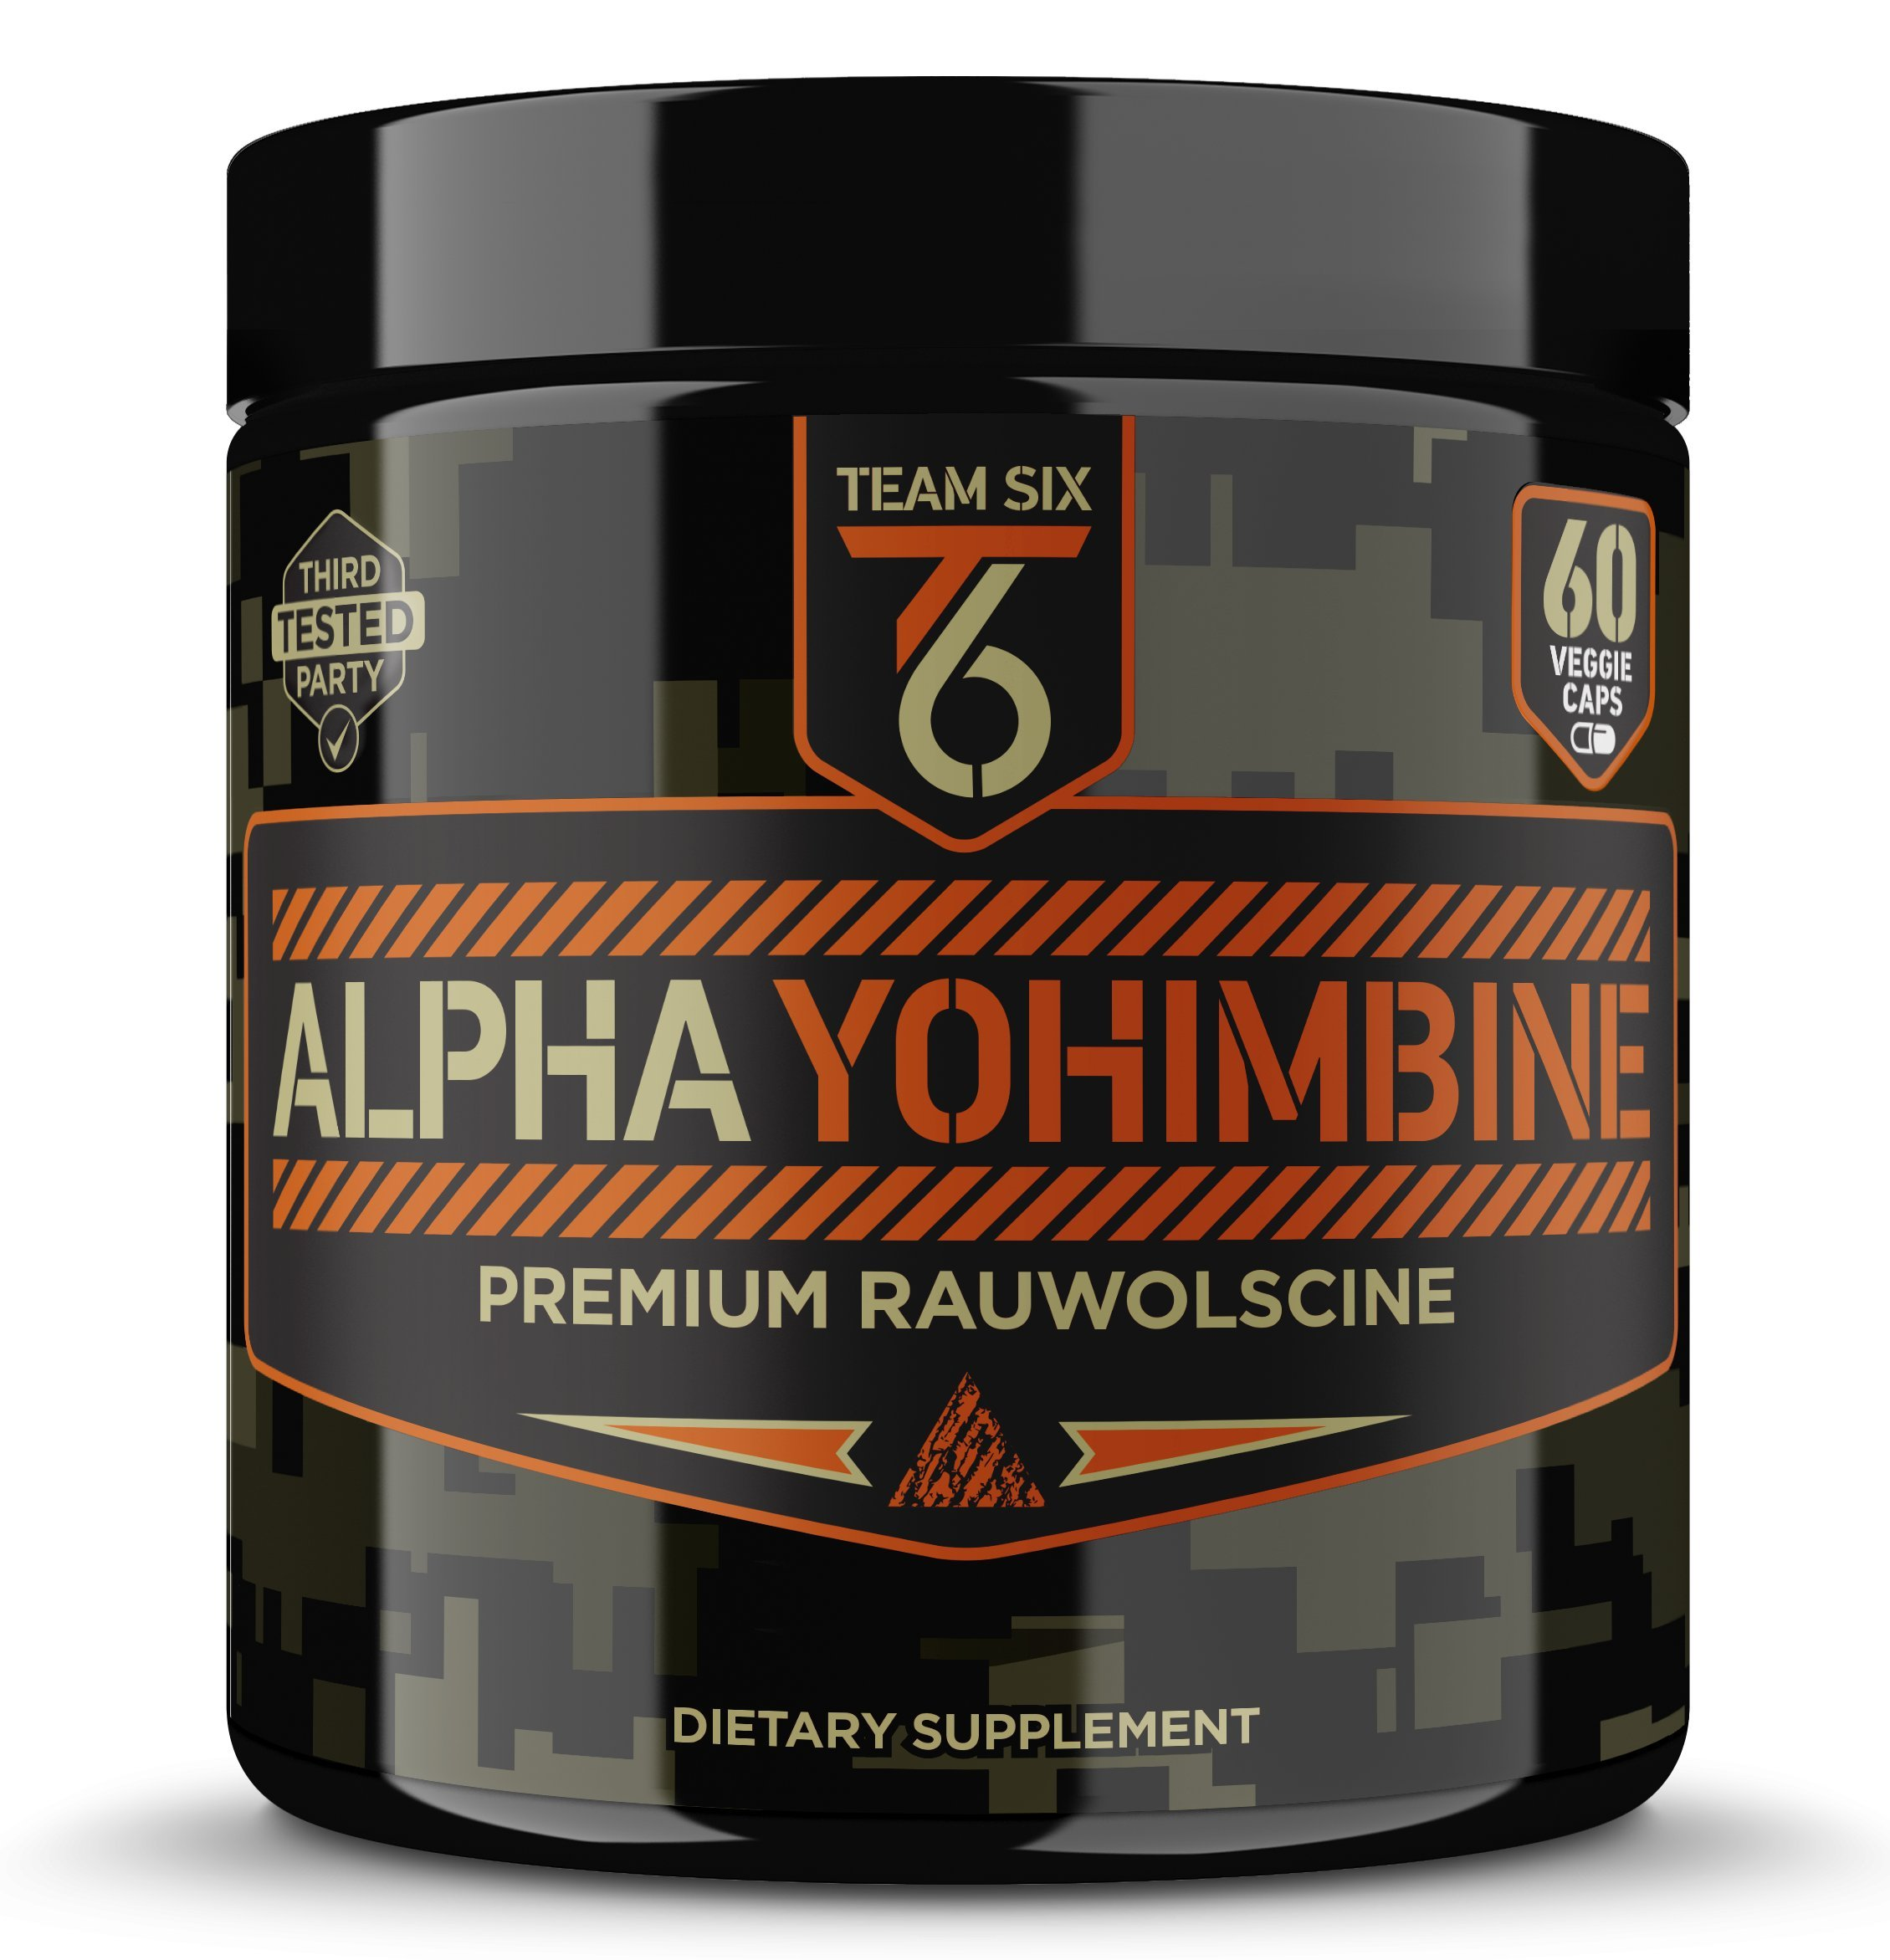 Team Six Supplements Alpha Yohimbine - Proven Yohimbe Bark Fat Burner, Weight Loss Pills That Work Fast - 3rd Party Tested for Purity and Potency, 60 veggie capsules by Team Six Supplements